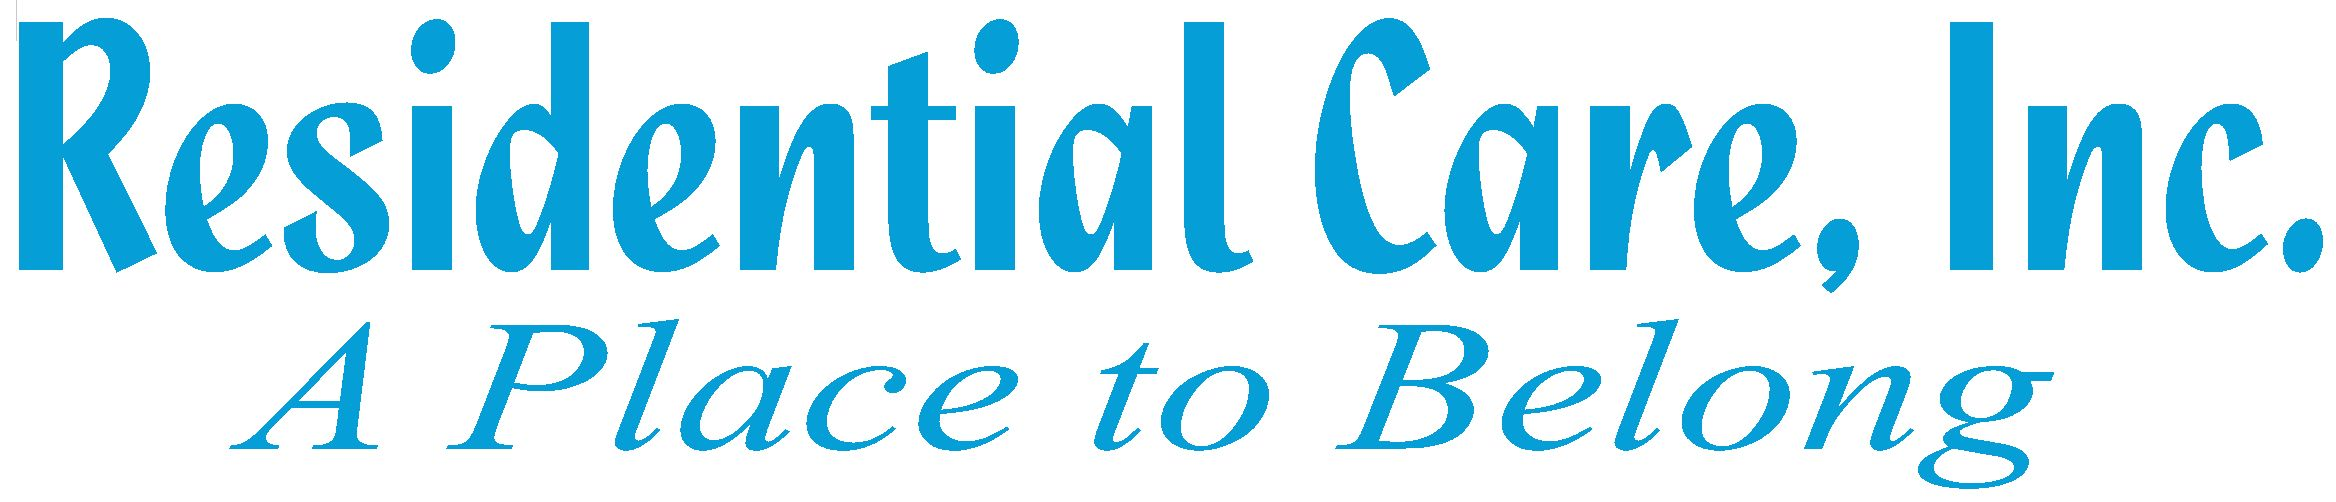 Residential Care, Inc